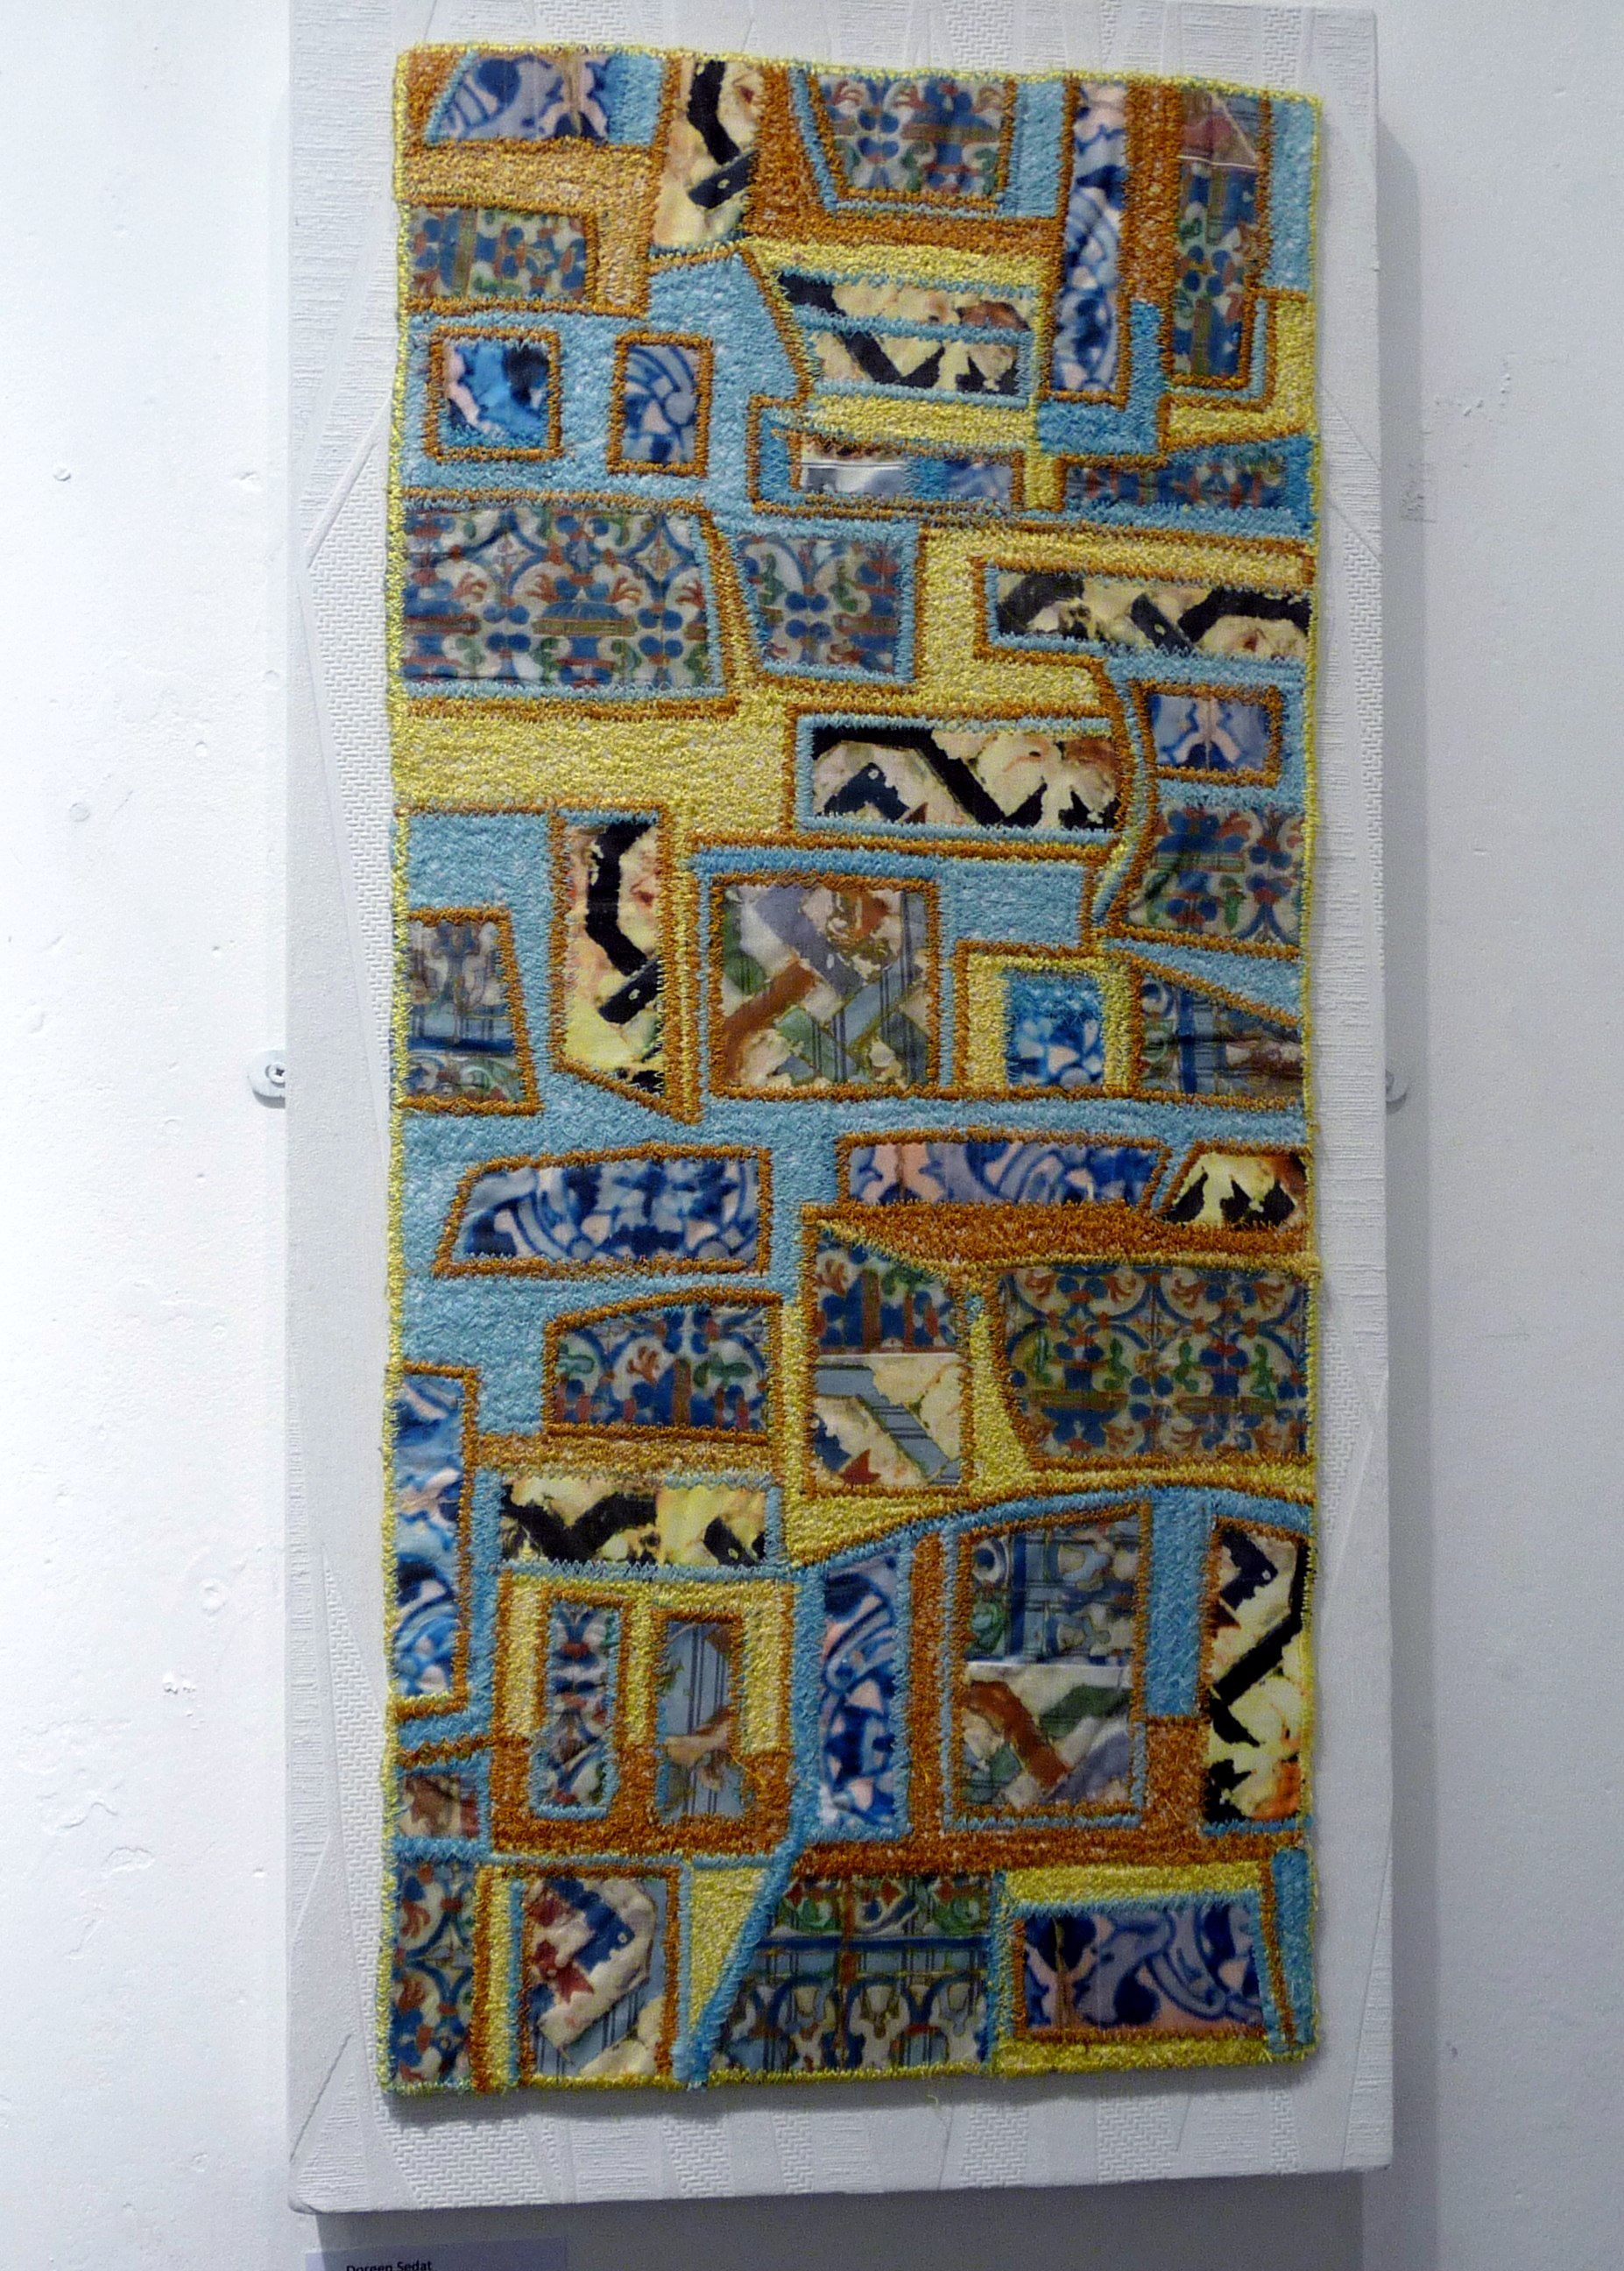 ECHOES OF THE MOORS 2 by Doreen Sedat of TX Textiles group